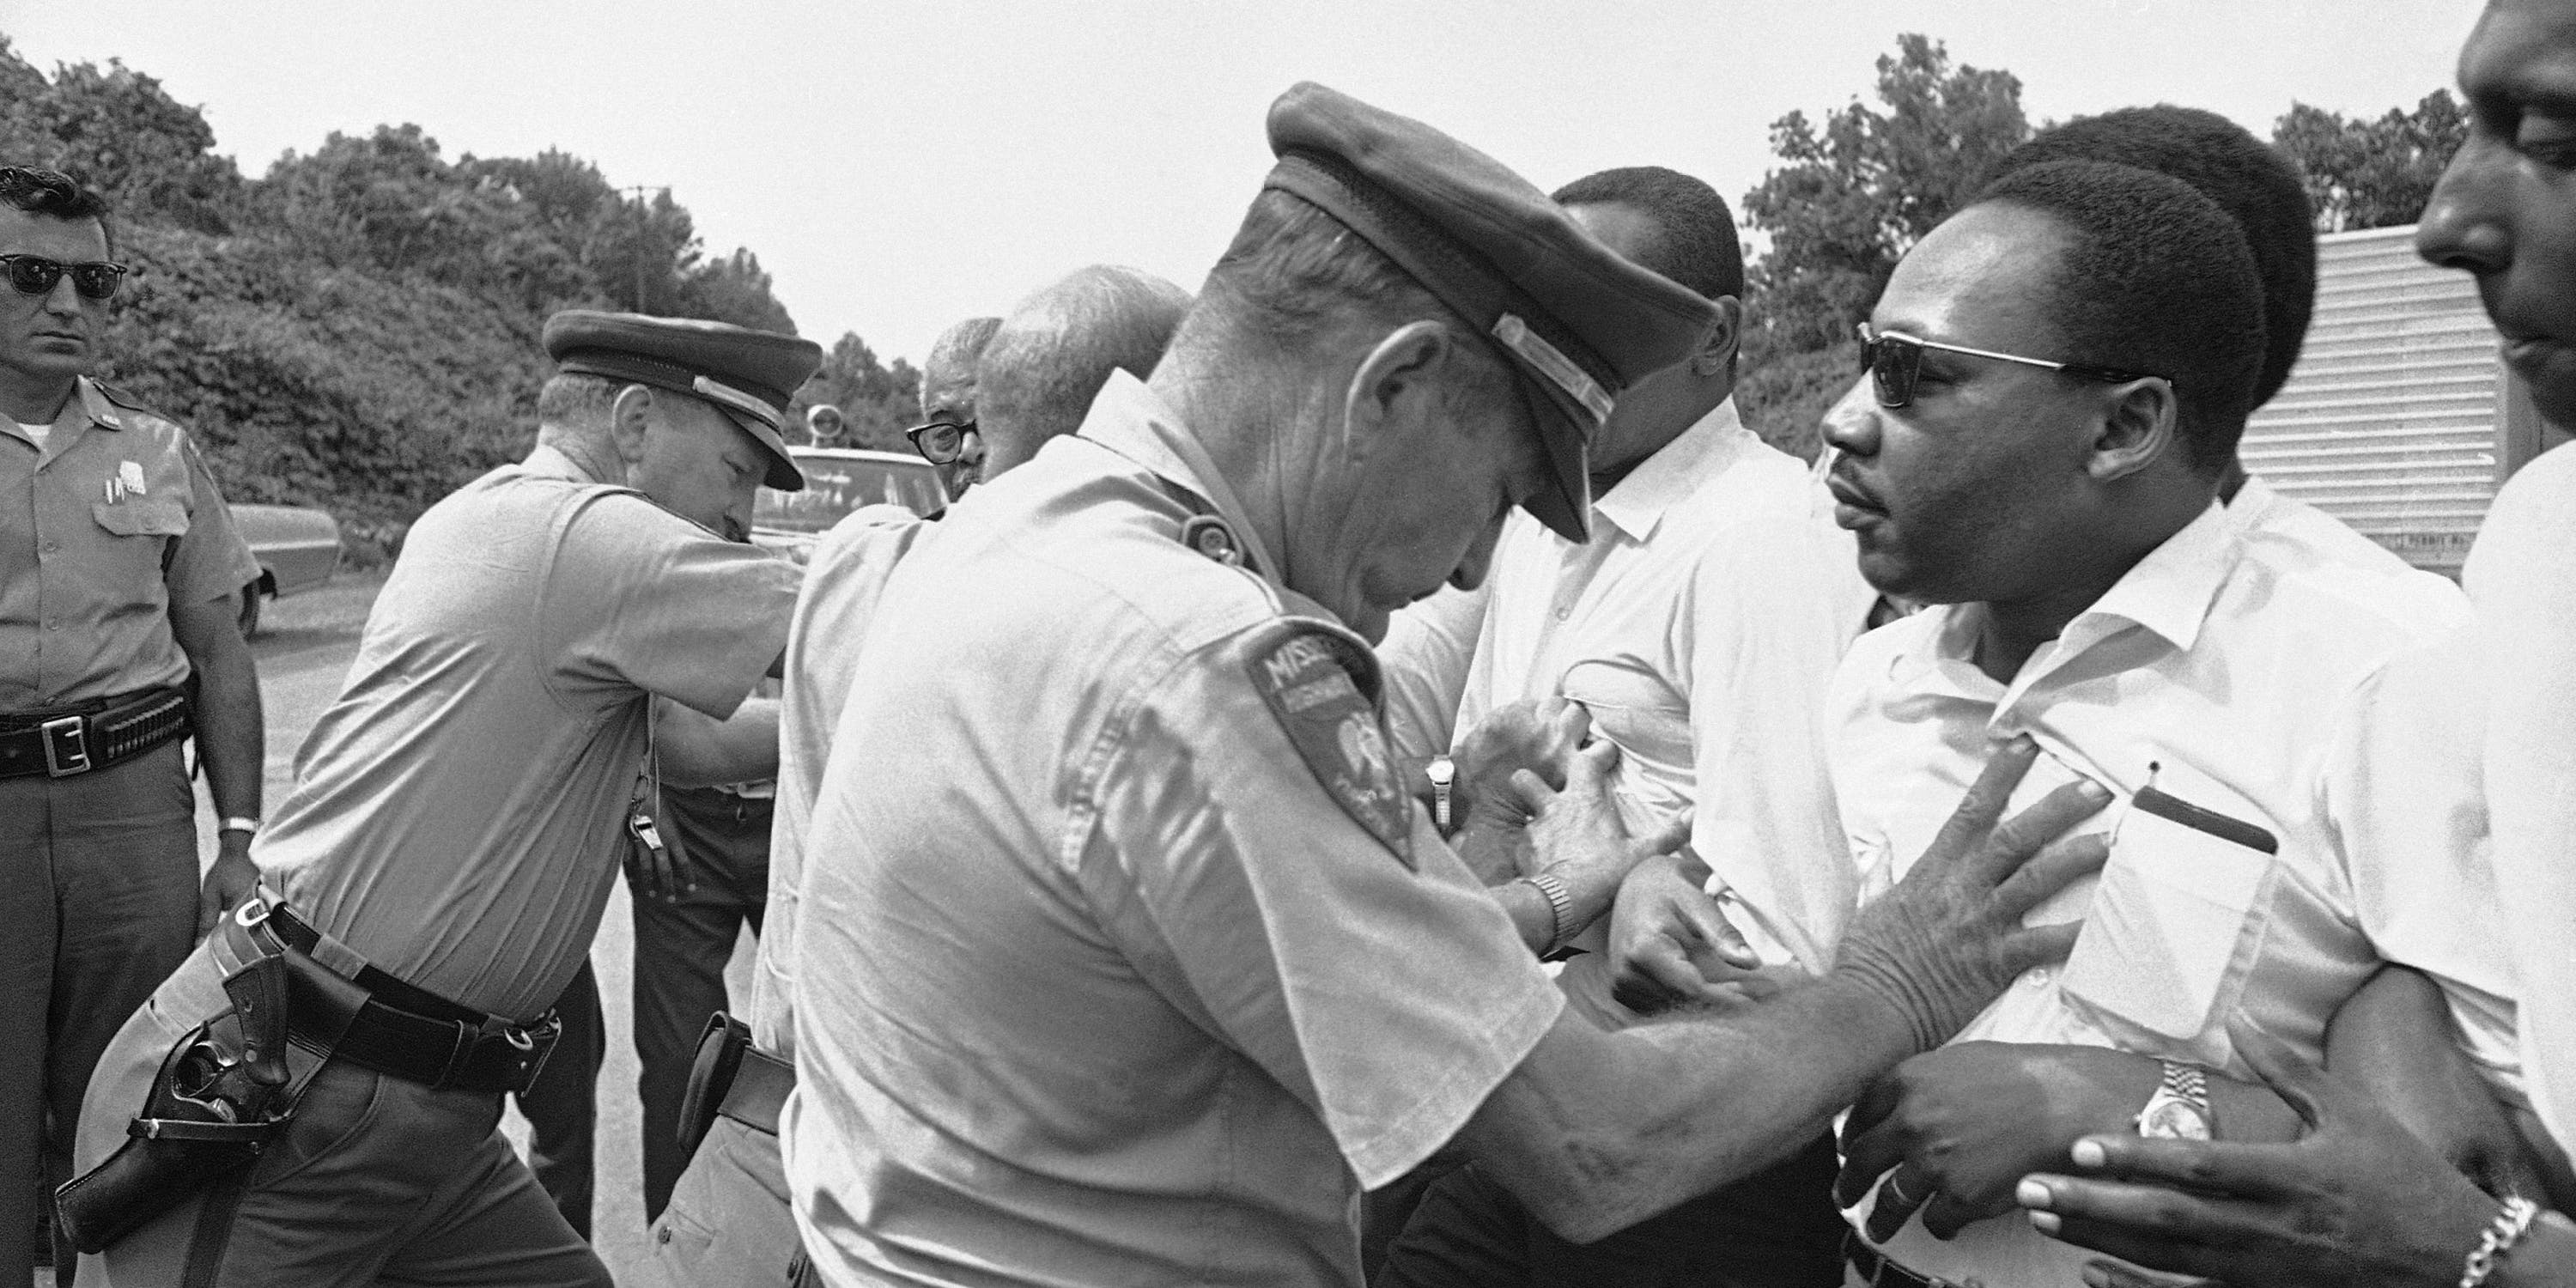 The Sanitizing of Martin Luther King and Rosa Parks